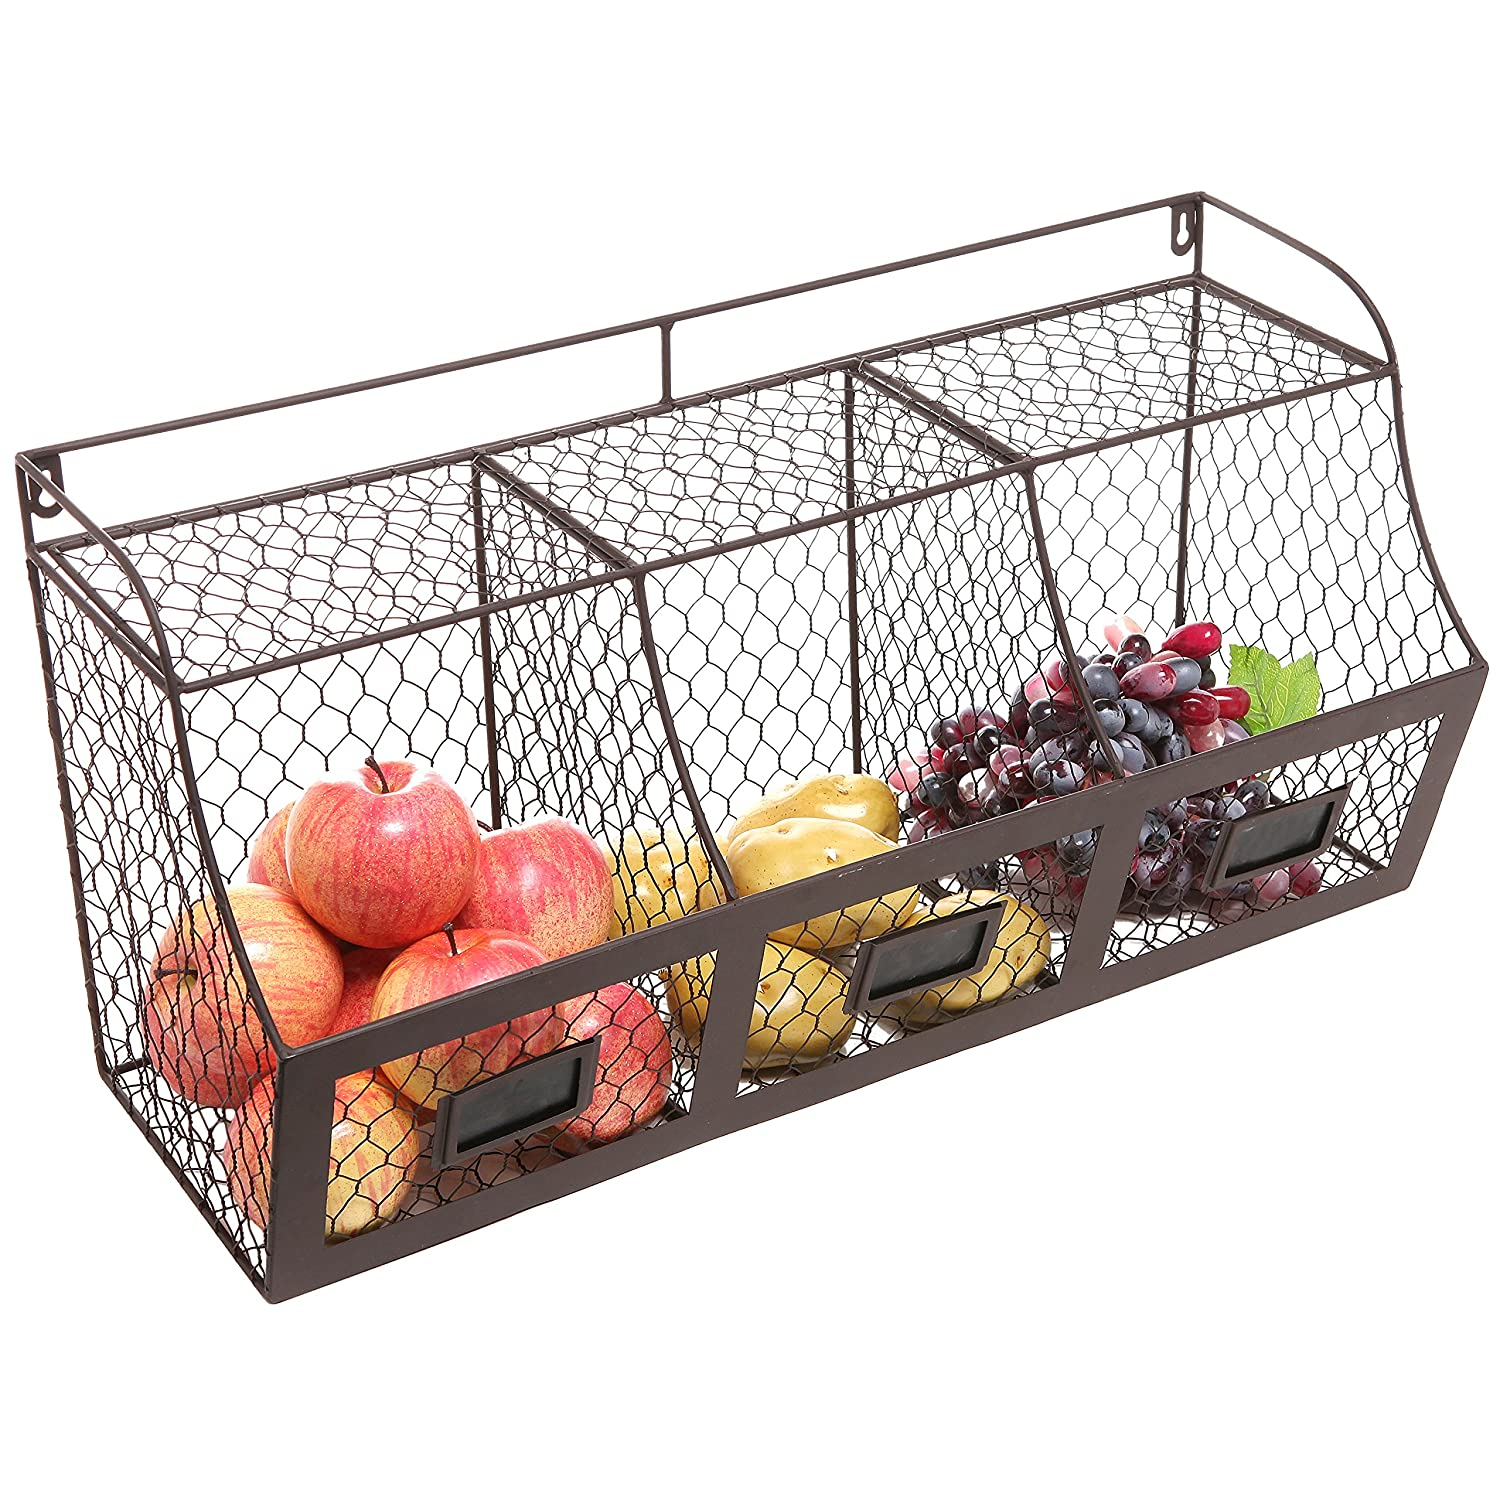 Charmant Amazon.com   Large Rustic Brown Metal Wire Wall Mounted Hanging Fruit  Basket Storage Organizer Bin W/Chalkboards